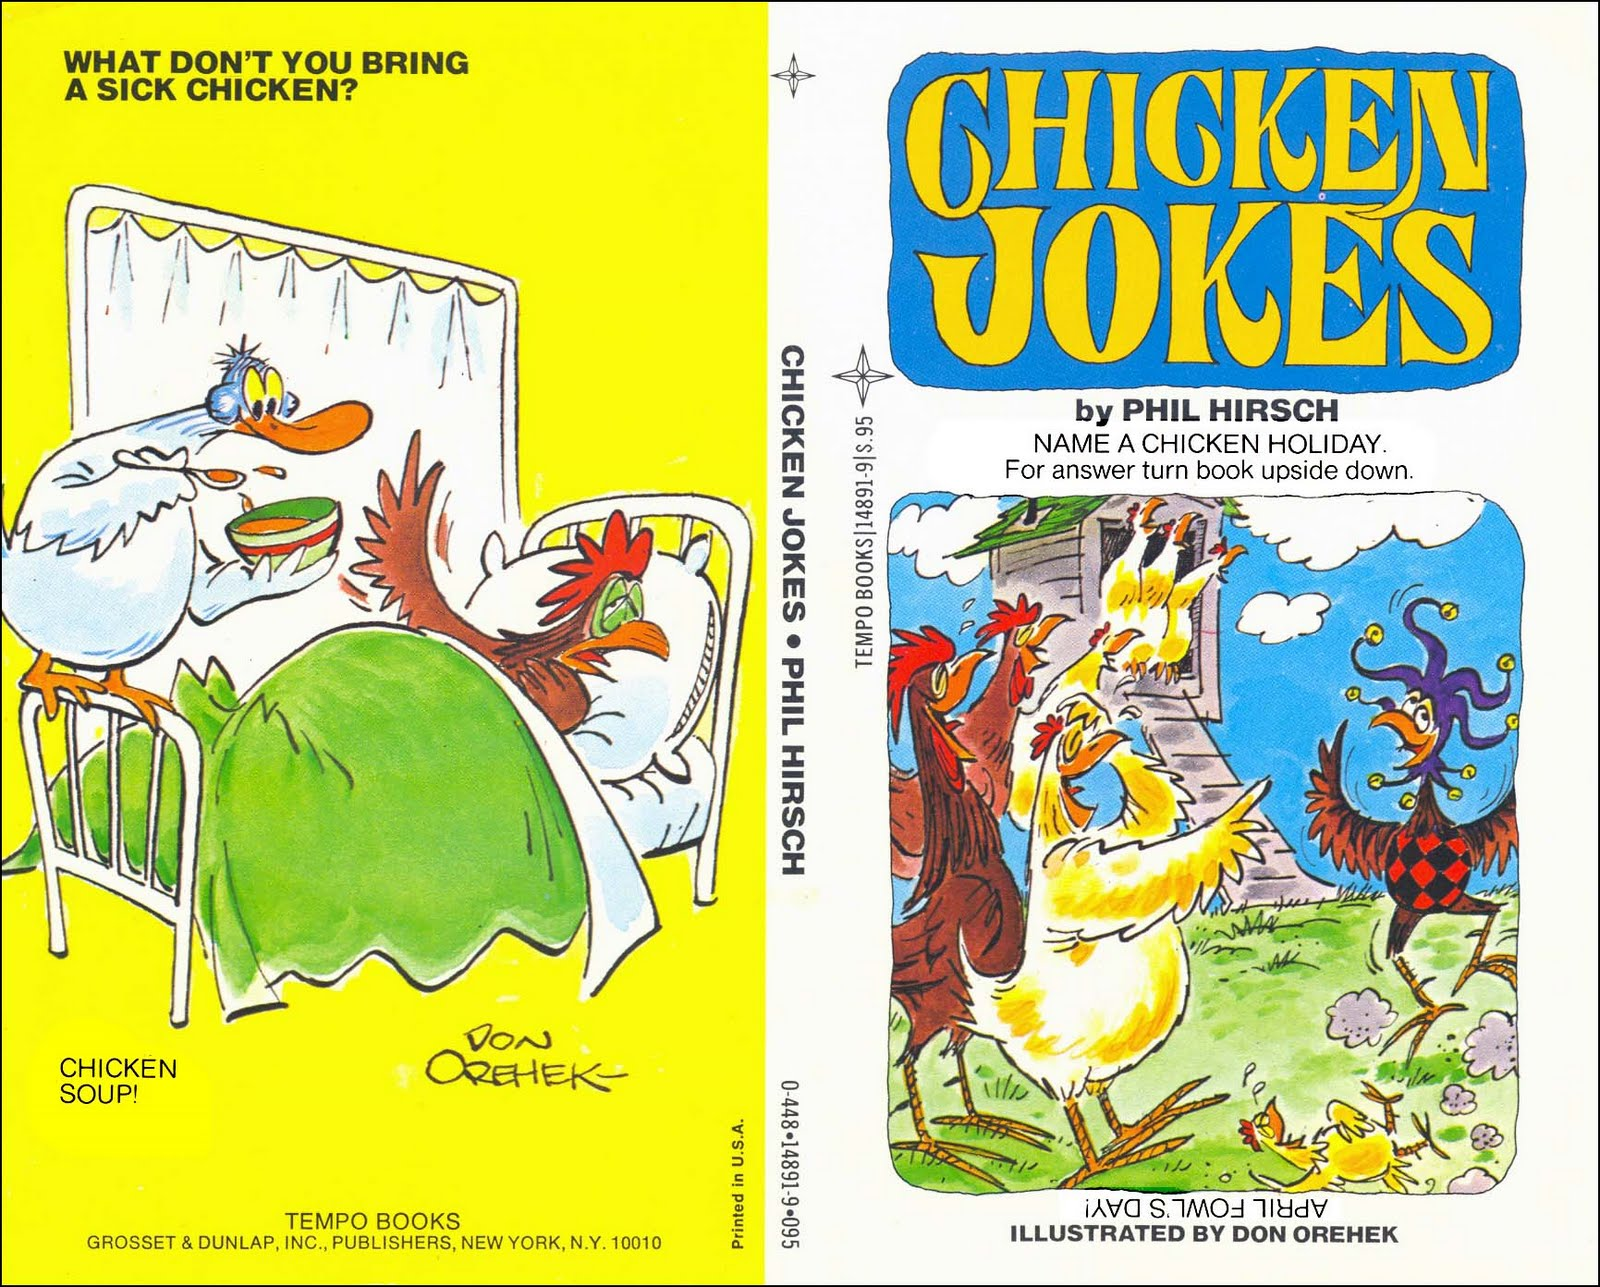 Jokes About Chickens: Don Orehek Cartoons: 209. Chicken Jokes